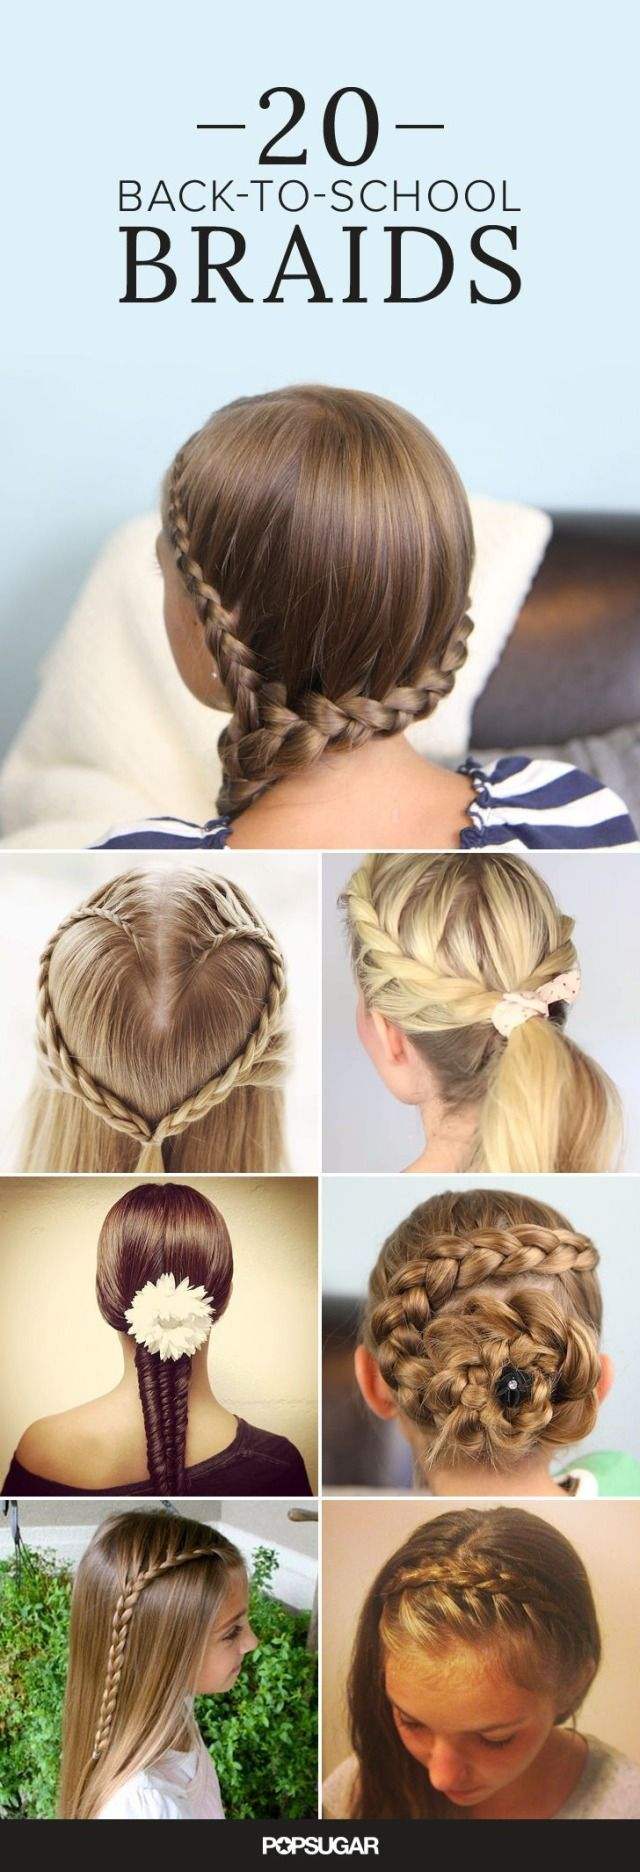 26 Braids to Inspire a School Morning 'Do Braided